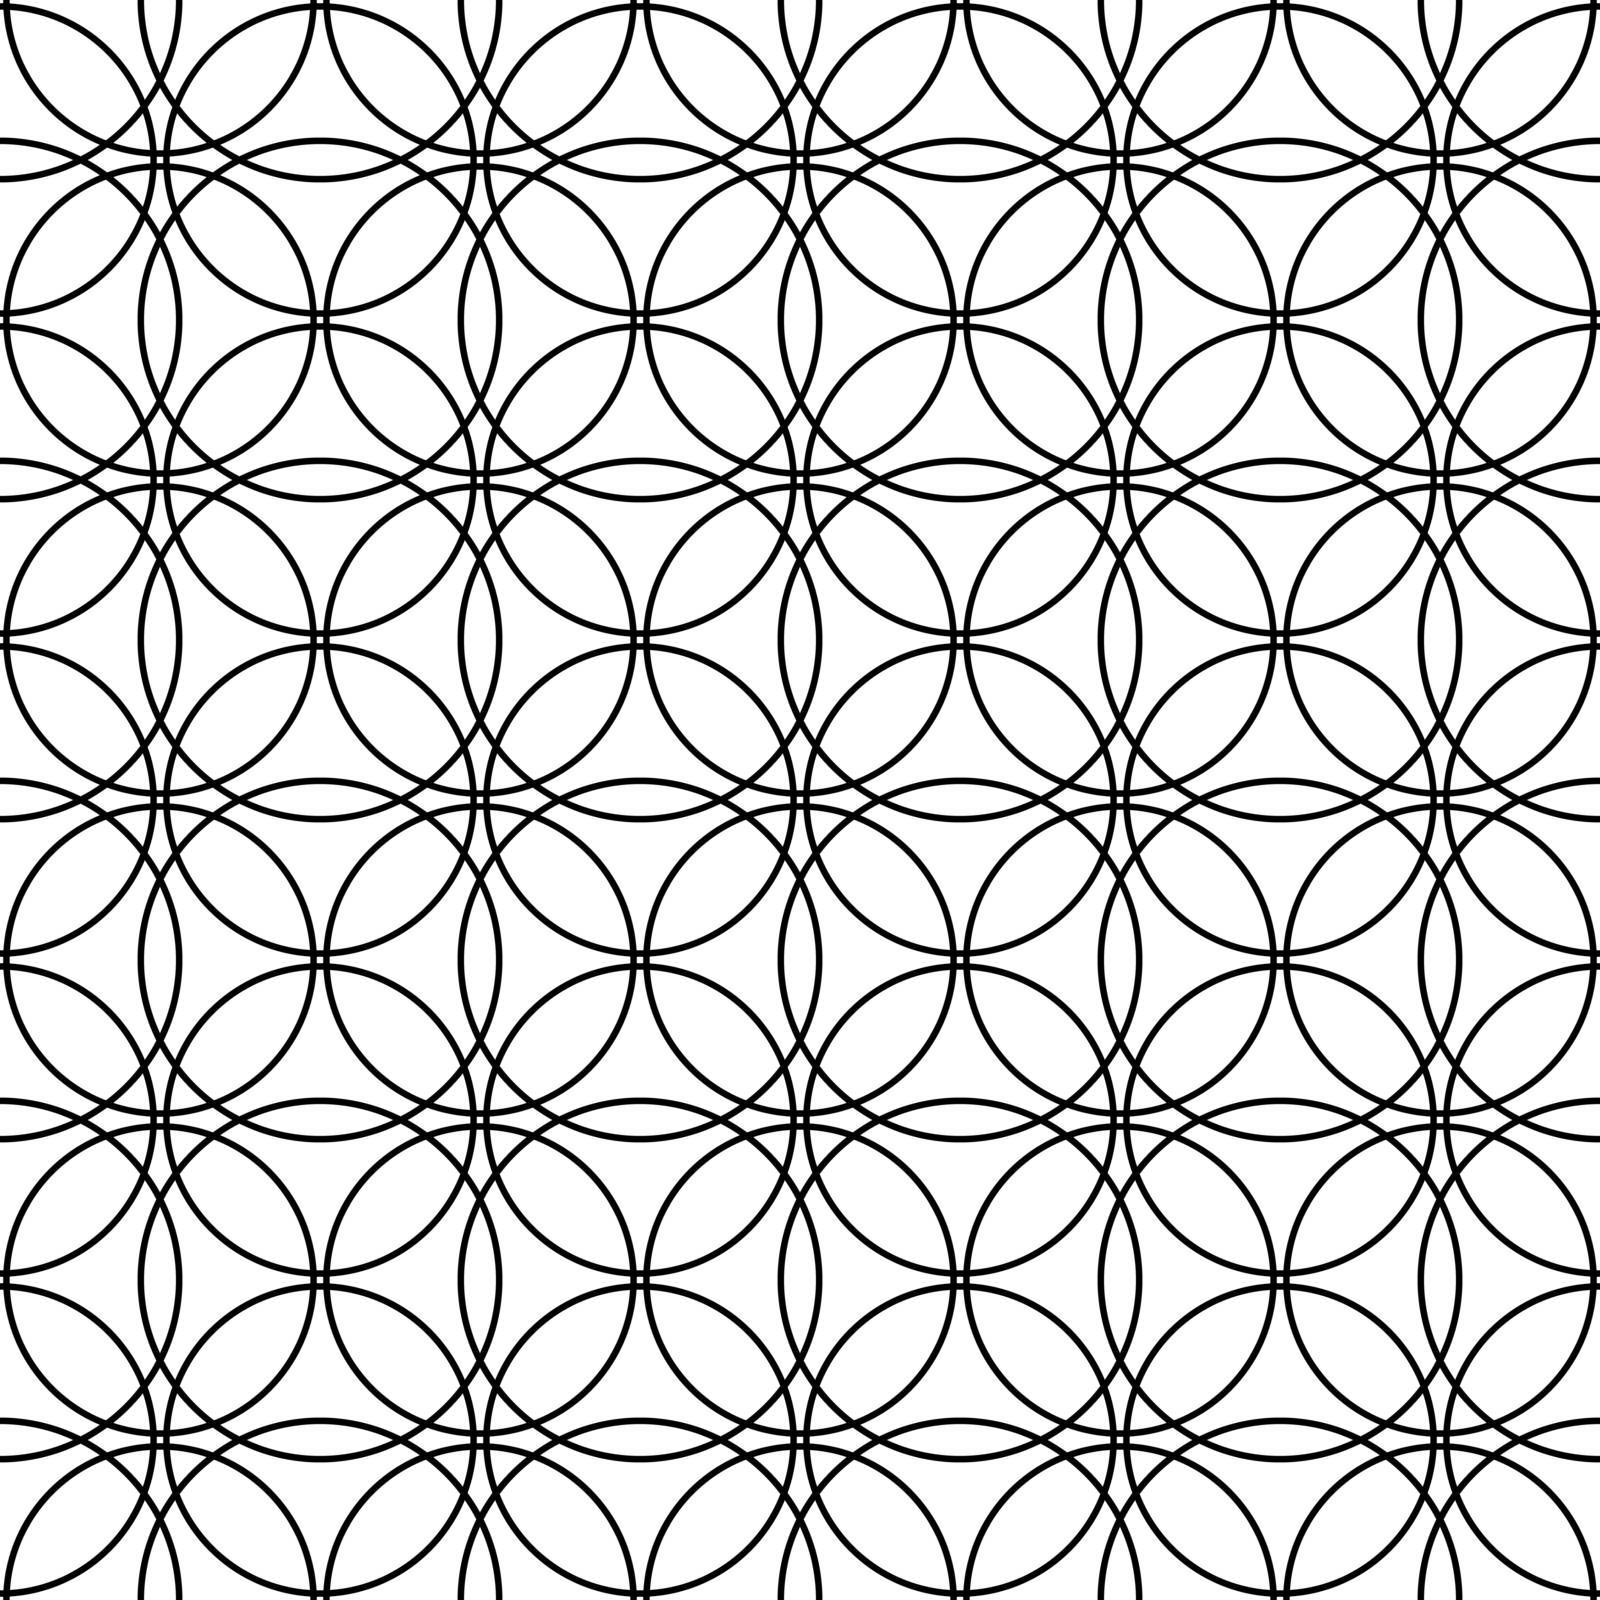 seamless geometric linear pattern creates intersecting circles. An ornament for texture, textiles and simple backgrounds. Flat style.